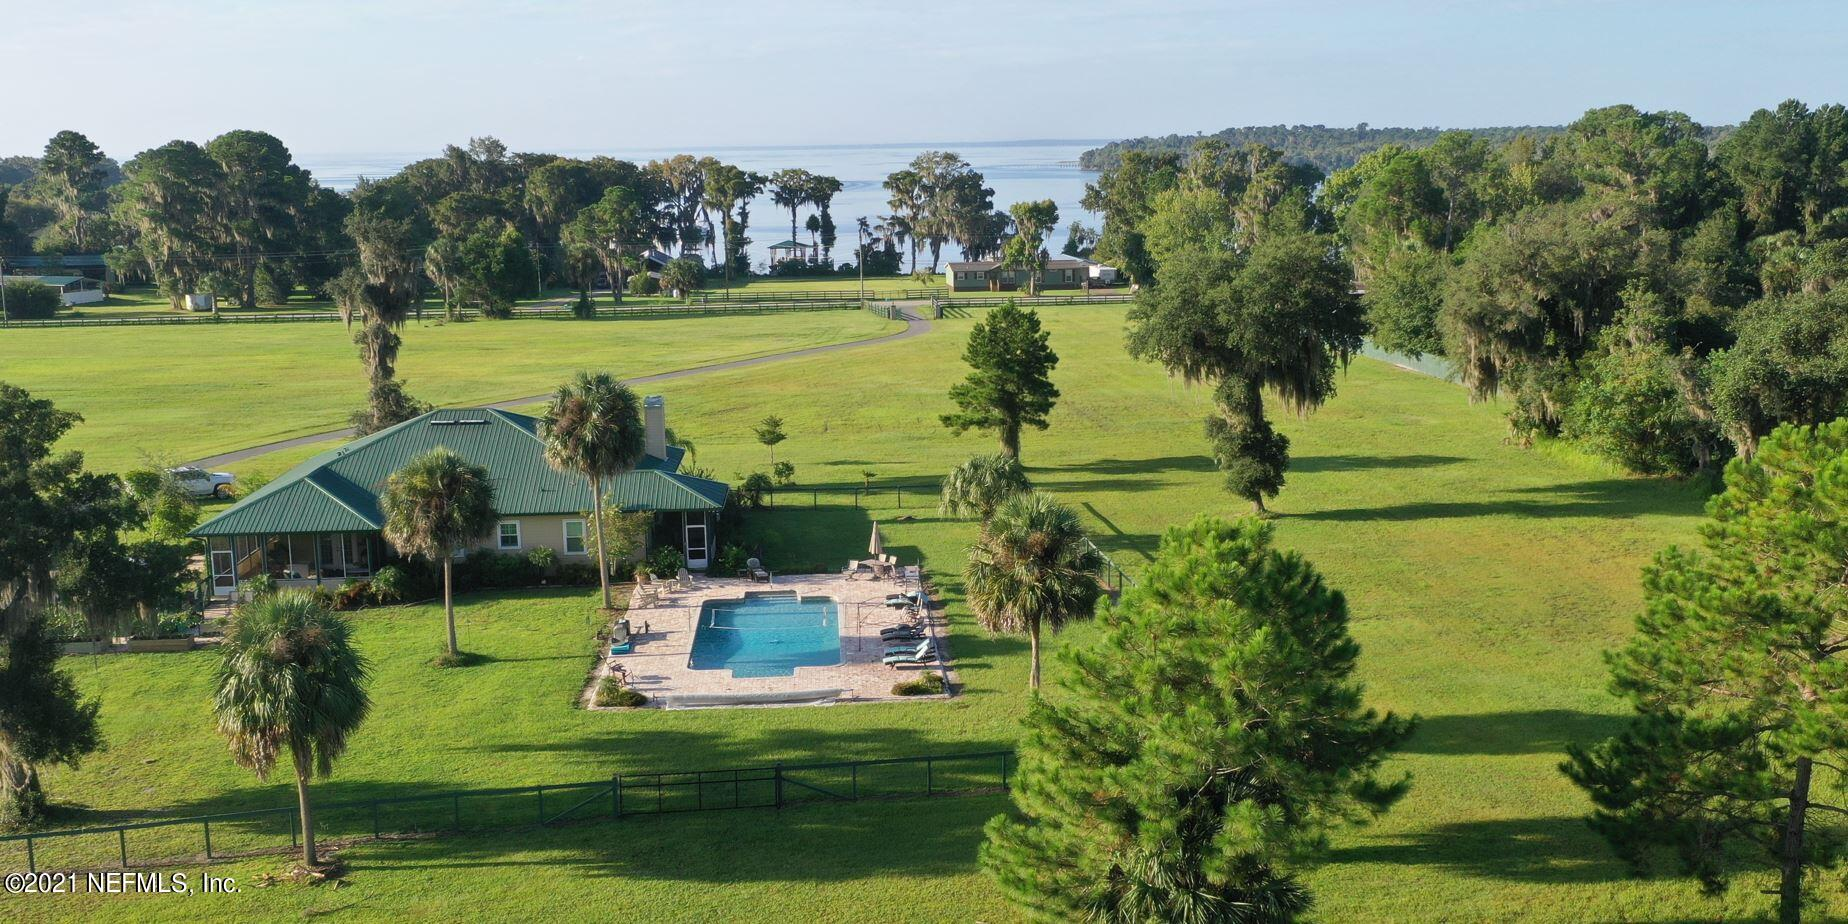 """GORGEOUS RIVERFRONT RESORT ON 41 ACRES WITH SPECTACULAR RIVER VIEWS! Enjoy horseback riding, ATV trail riding, swimming pool, fishing, boating & more on this self sustained homesteaded resort!! Luxurious 3BR home with high end upgrades on 19.96 acres PLUS a 19.96 acre pasture PLUS 1 acre on the St. Johns River! 2 stone fireplaces on 66x15 wrap around screened porch & comfy living room, both with wood floors & wood ceiling! Scrumptious kitchen with top of the line appliances! Huge dining room! Split bedroom plan with spacious owner suite with river views. 2nd bedroom has its own 15x10 screen porch with river views. Huge saltwater heated pool with river view! One acre sits directly on St Johns River with brand new dock, boat lift & boat house. 2 STEEL BUILDINGS - 50x30 PLUS 50x60 fits RV. Plus, a 3 Stall Barn for the horses & an adorable chicken coop. Plant a garden anywhere on this 41+acre property known to everyone as the """"RESORT Not only can you live off the land here, it's the perfect place to gather your friends. There are hookups available for 3 RV's!! Take your friends/family for an ATV ride through miles of trails, or jump on your boat & meet your friends at the springs! This wonderful home sits on 19.96 acres & joins another 19.96 acres of pasture! Ride your horses through acres of land on & around this homestead. To top it off, you've got an acre directly on Lake George which expands to St. Johns River where you can explore miles of river, lots of islands & the manatees at the springs. This home was built to create a self sustained homestead where you could, literally, live off the land & the river. Every single thing was done with that in mind, from the 2 huge steel buildings to the chicken coop, the 3 stall barn and the dock directly on the river. This is a luxuriously unique & stunning property that would be hard to duplicate! Close to St Augustine and Jacksonville!"""